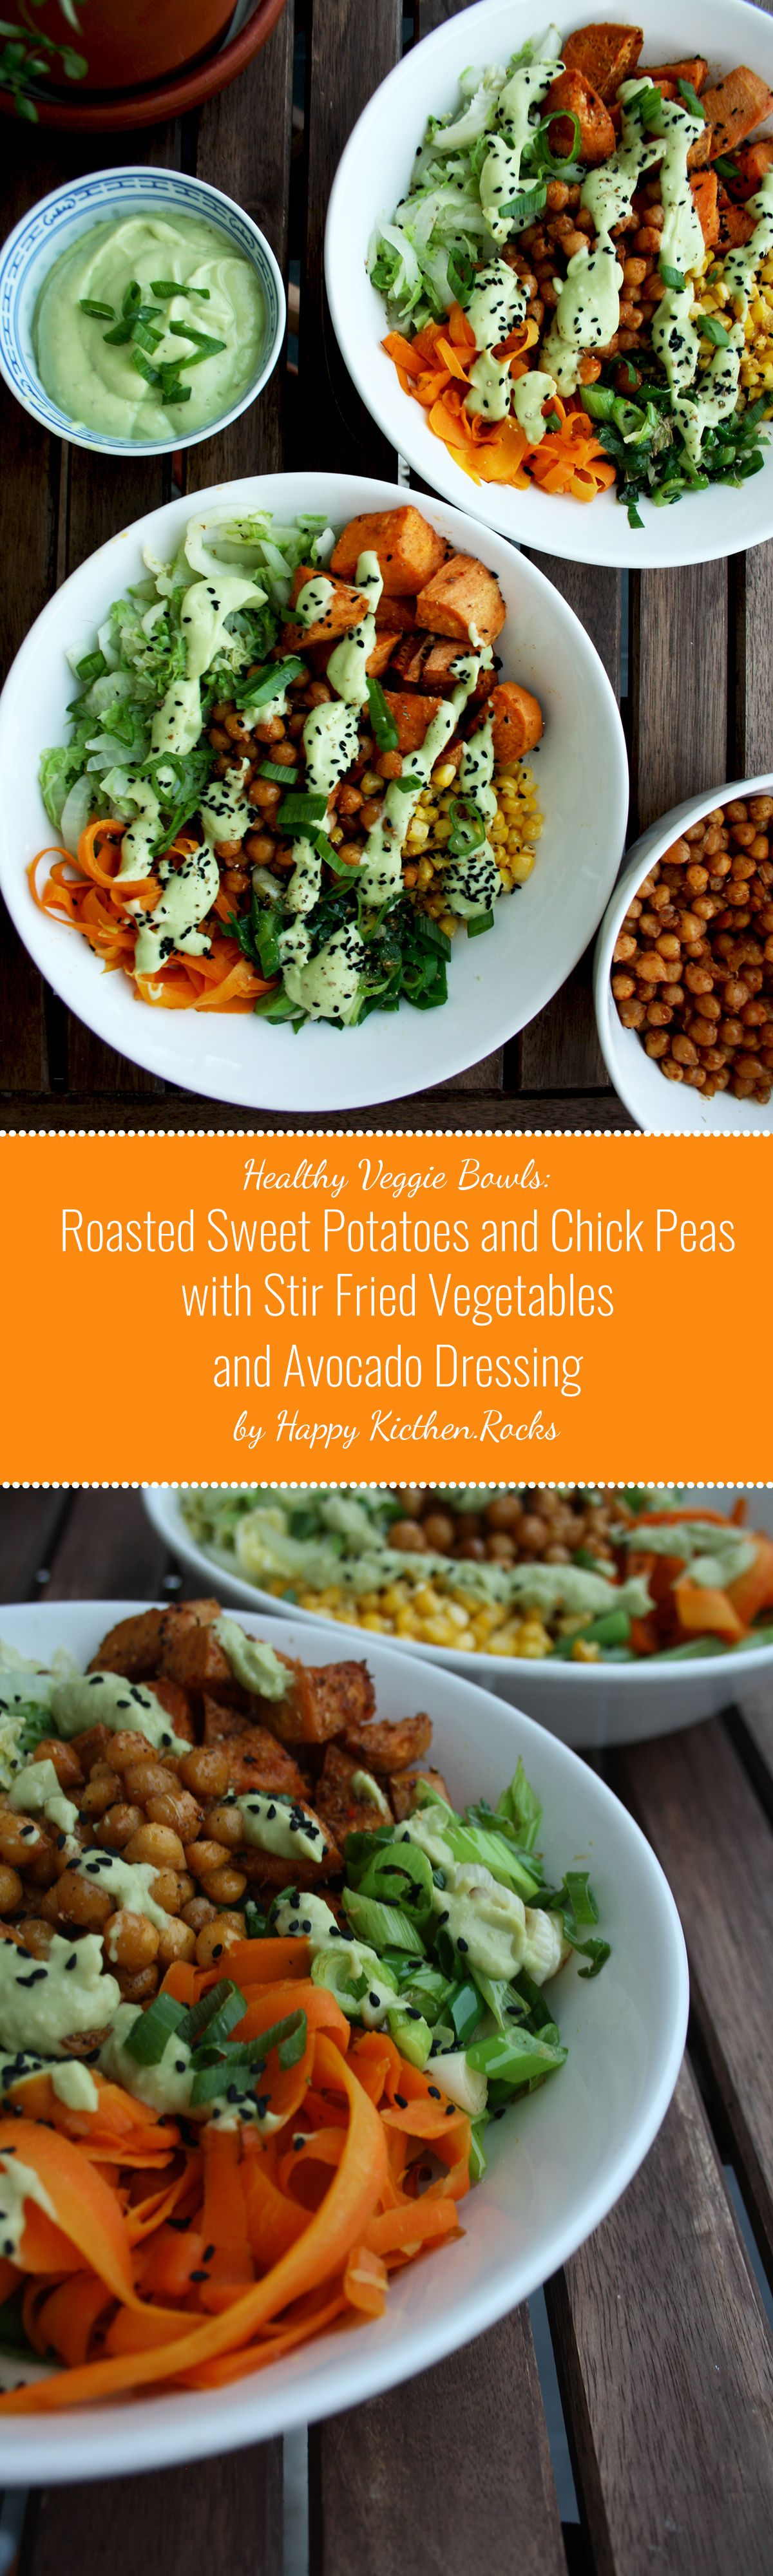 Healthy Veggie Bowls Roasted Sweet Potatoes And Chick Peas With